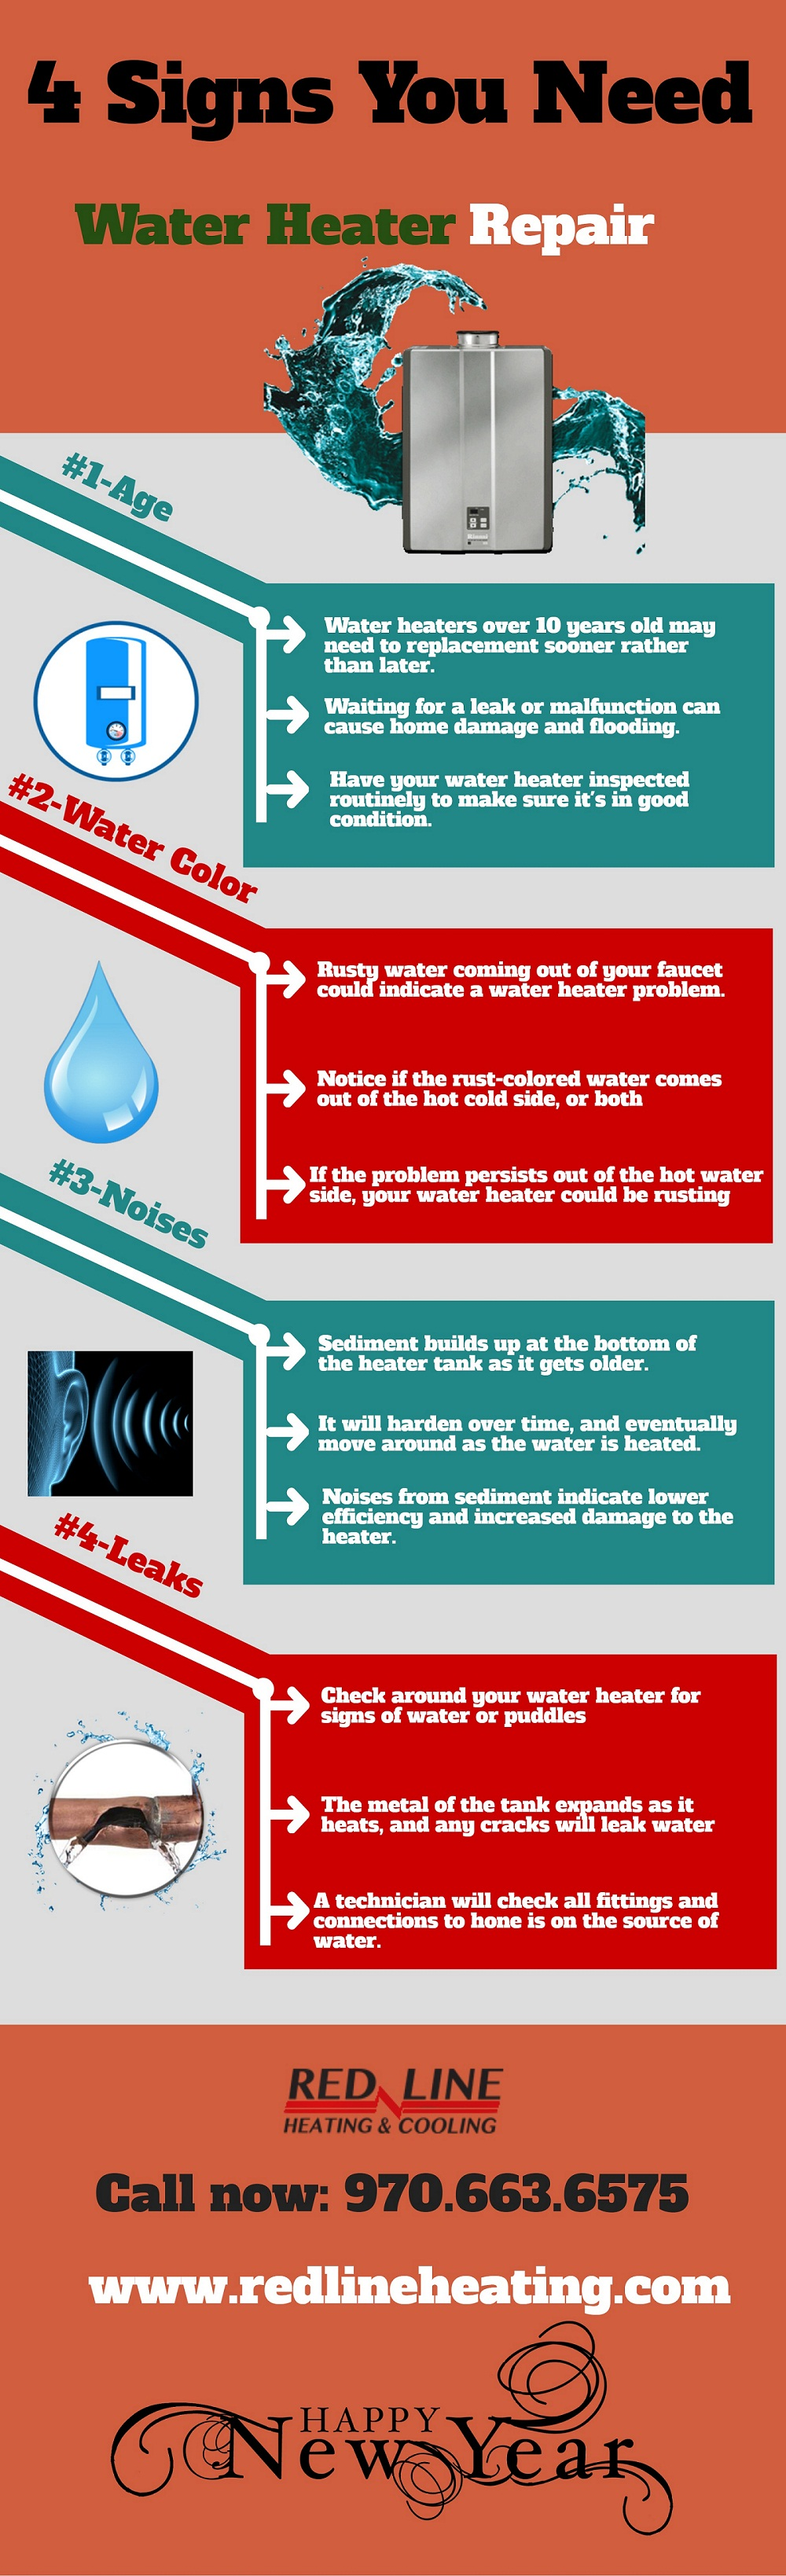 4 Signs You Need Water Heater Repair Water heater repair